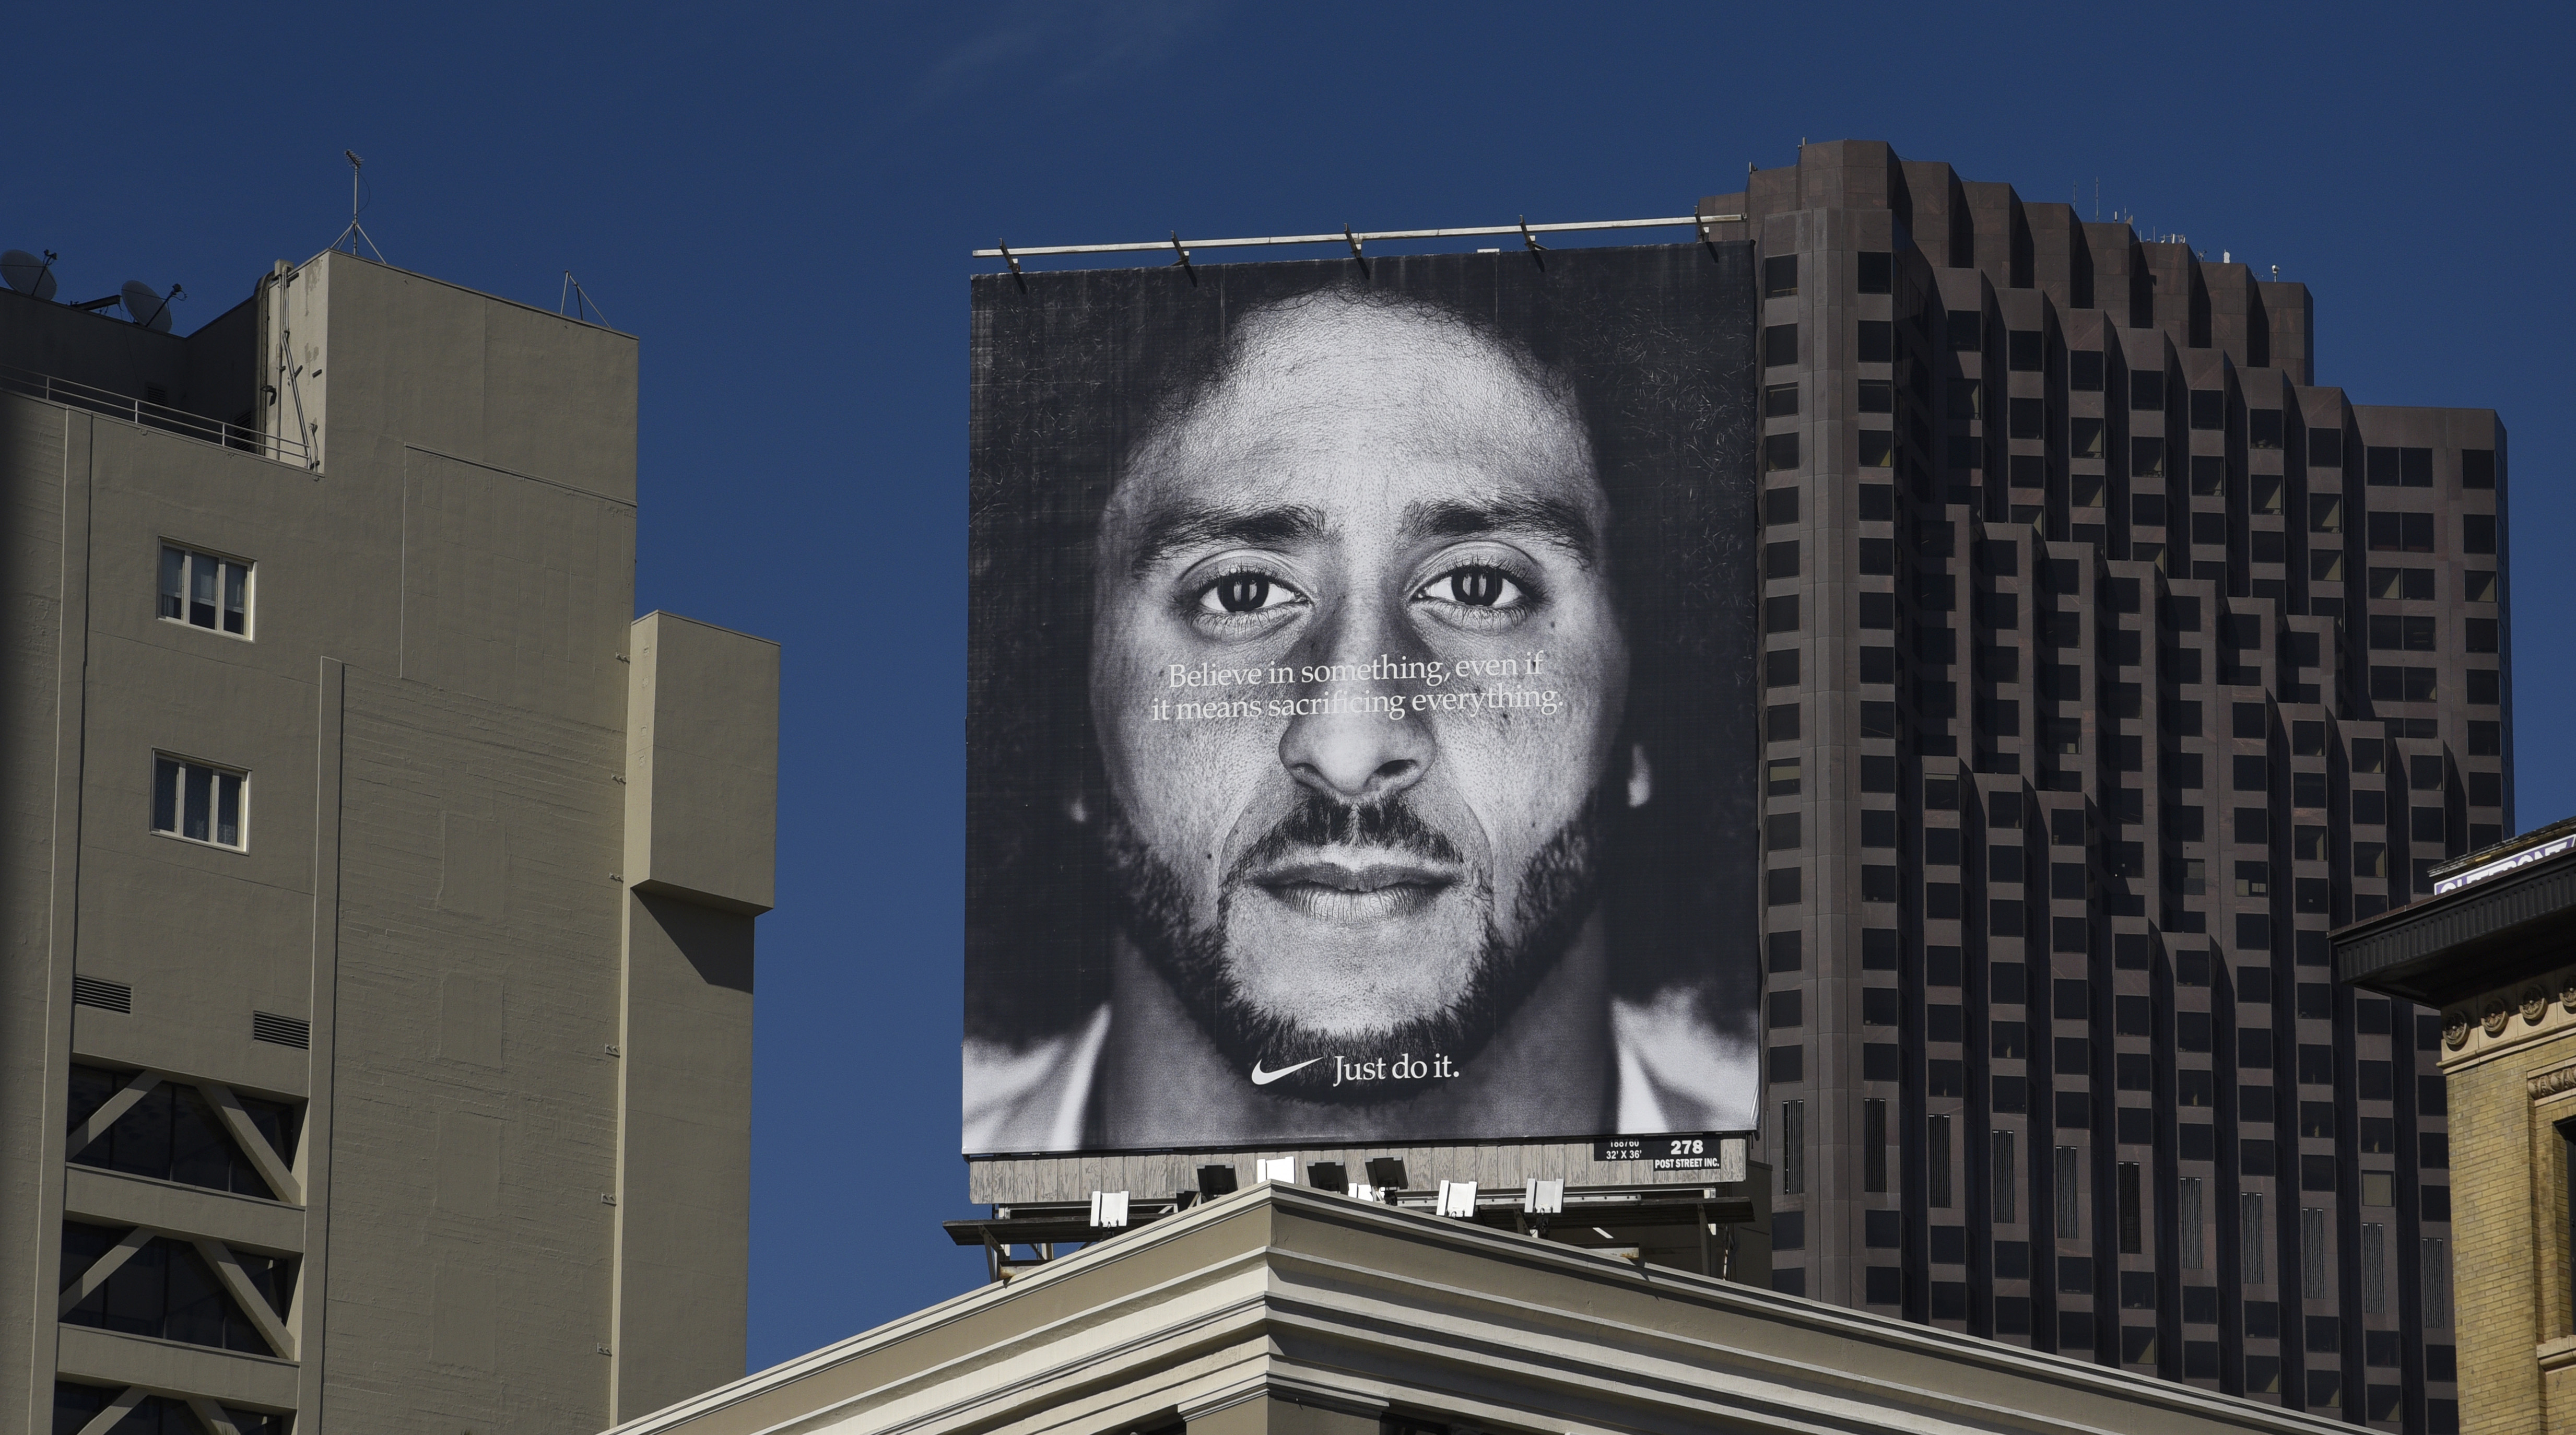 306bd5780 Colorado store to close after protesting Colin Kaepernick